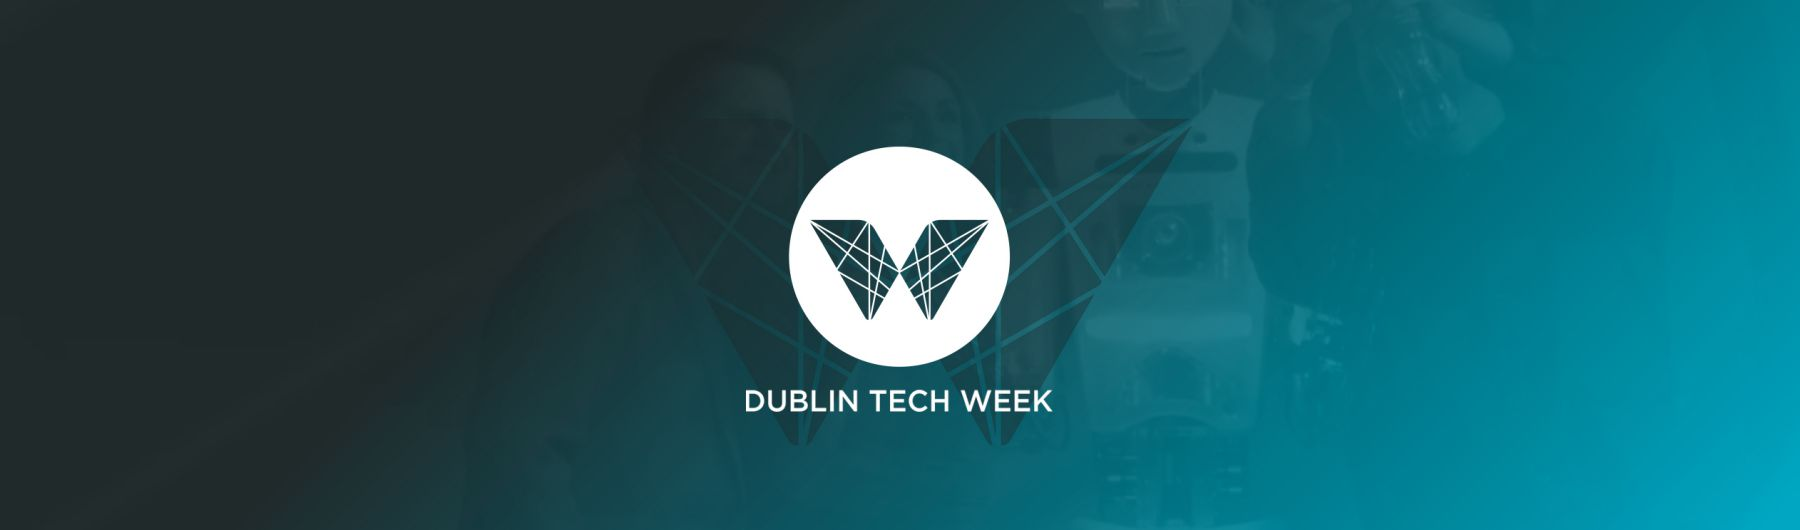 "Dublin Tech Week 2018 - ""The Takeover"""